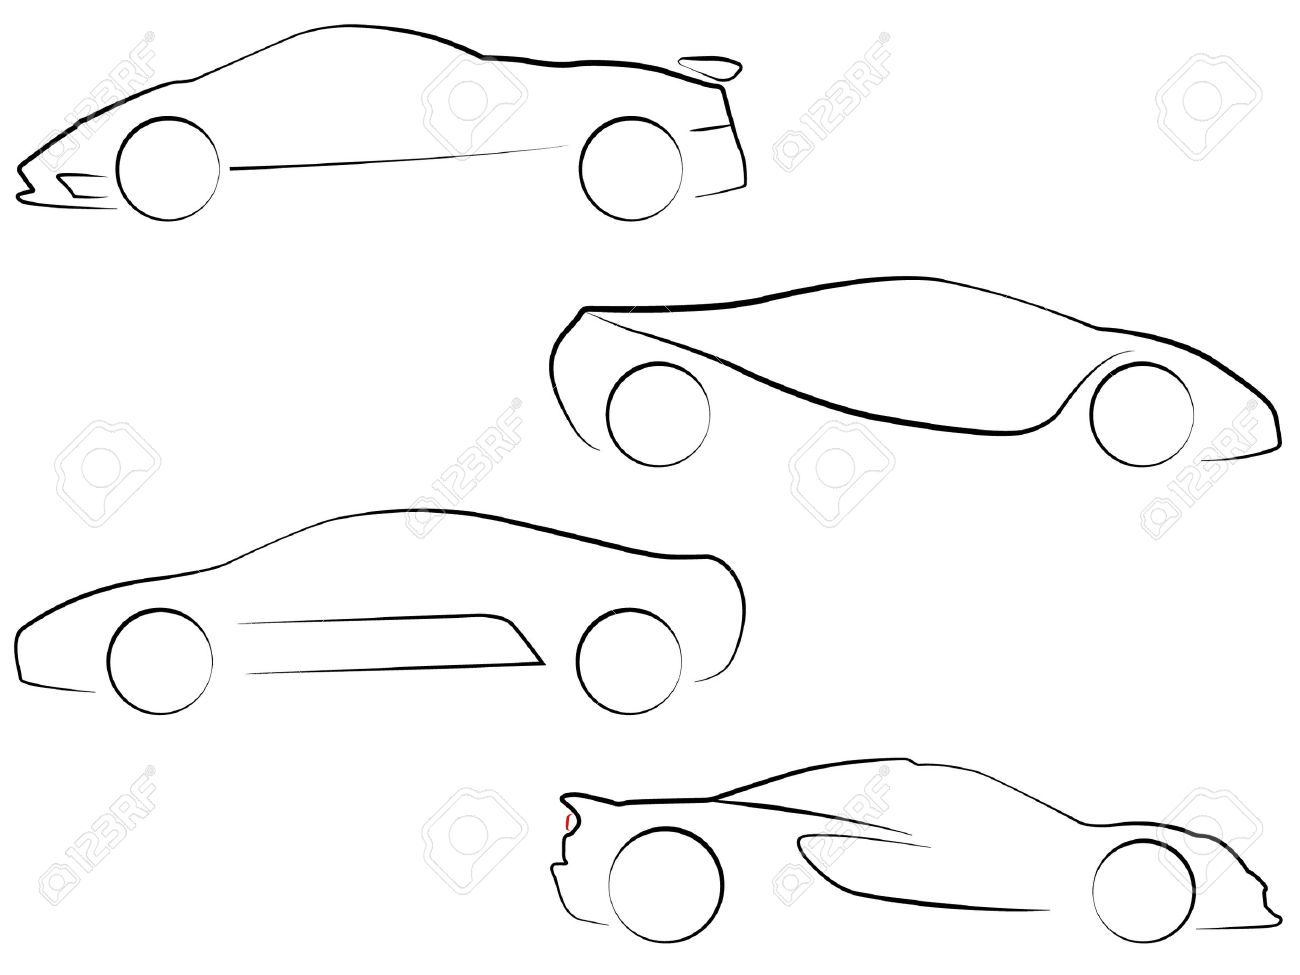 Super Car Stock Vector Illustration And Royalty Free Super